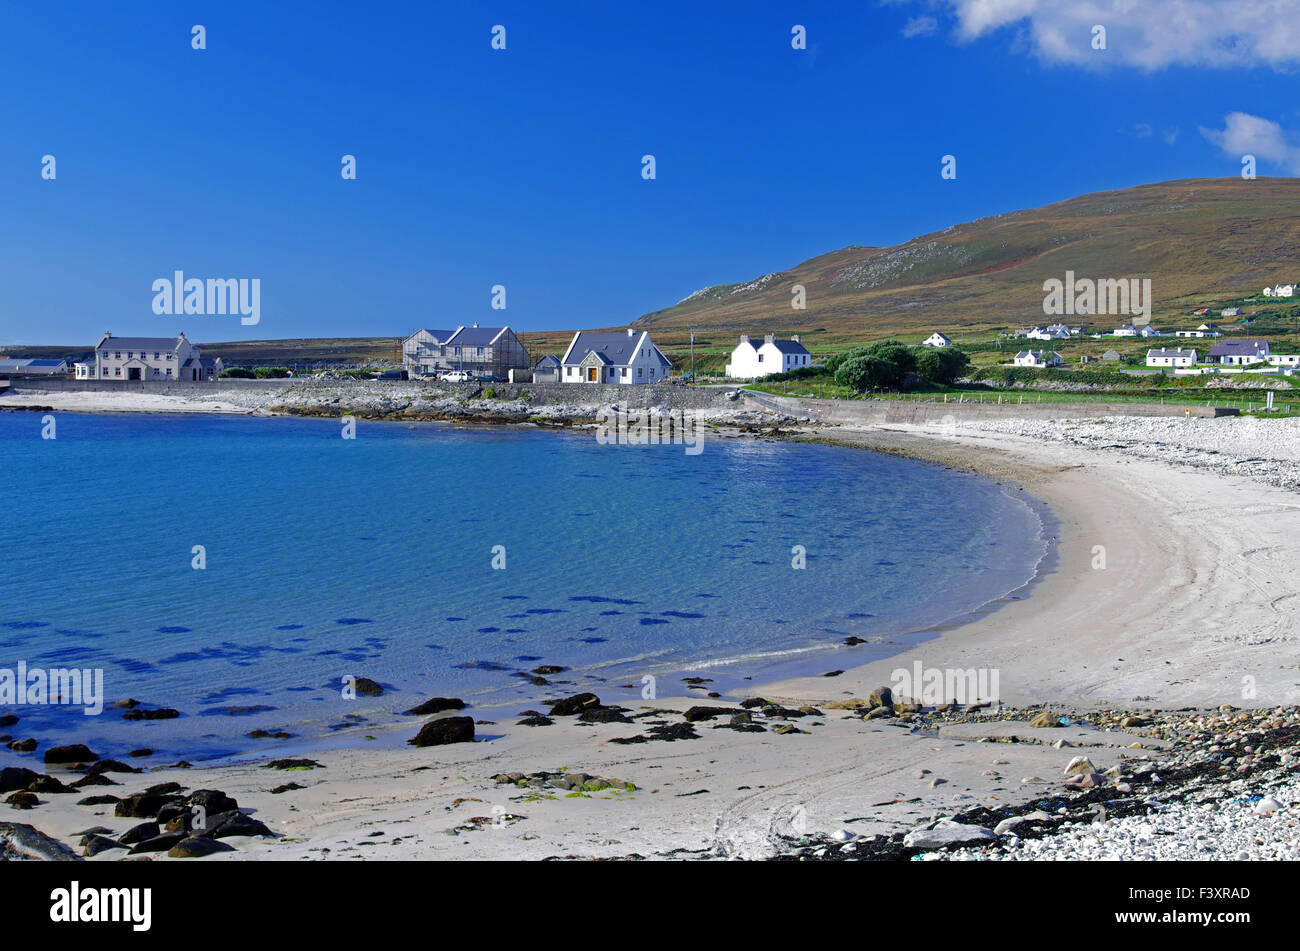 calm bay on achill island - Stock Image